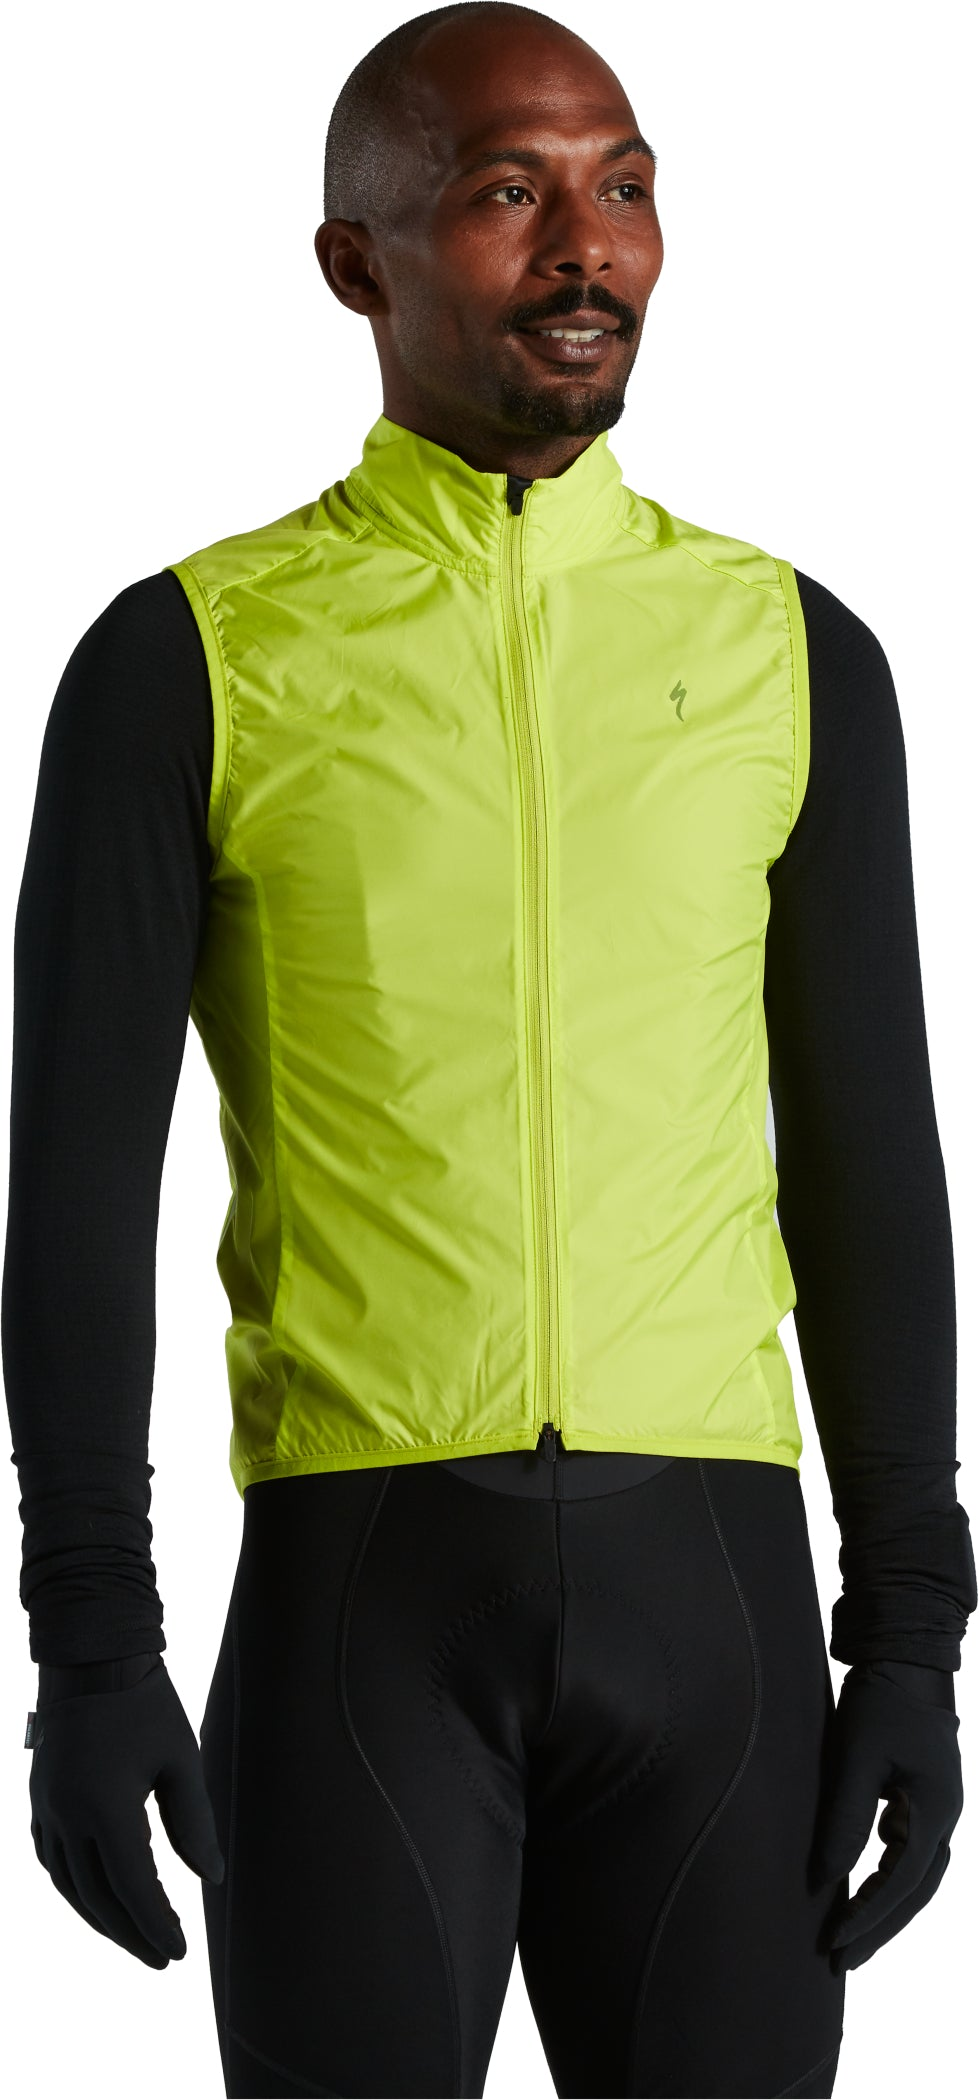 Men's HyprViz Race-Series Wind Gilet